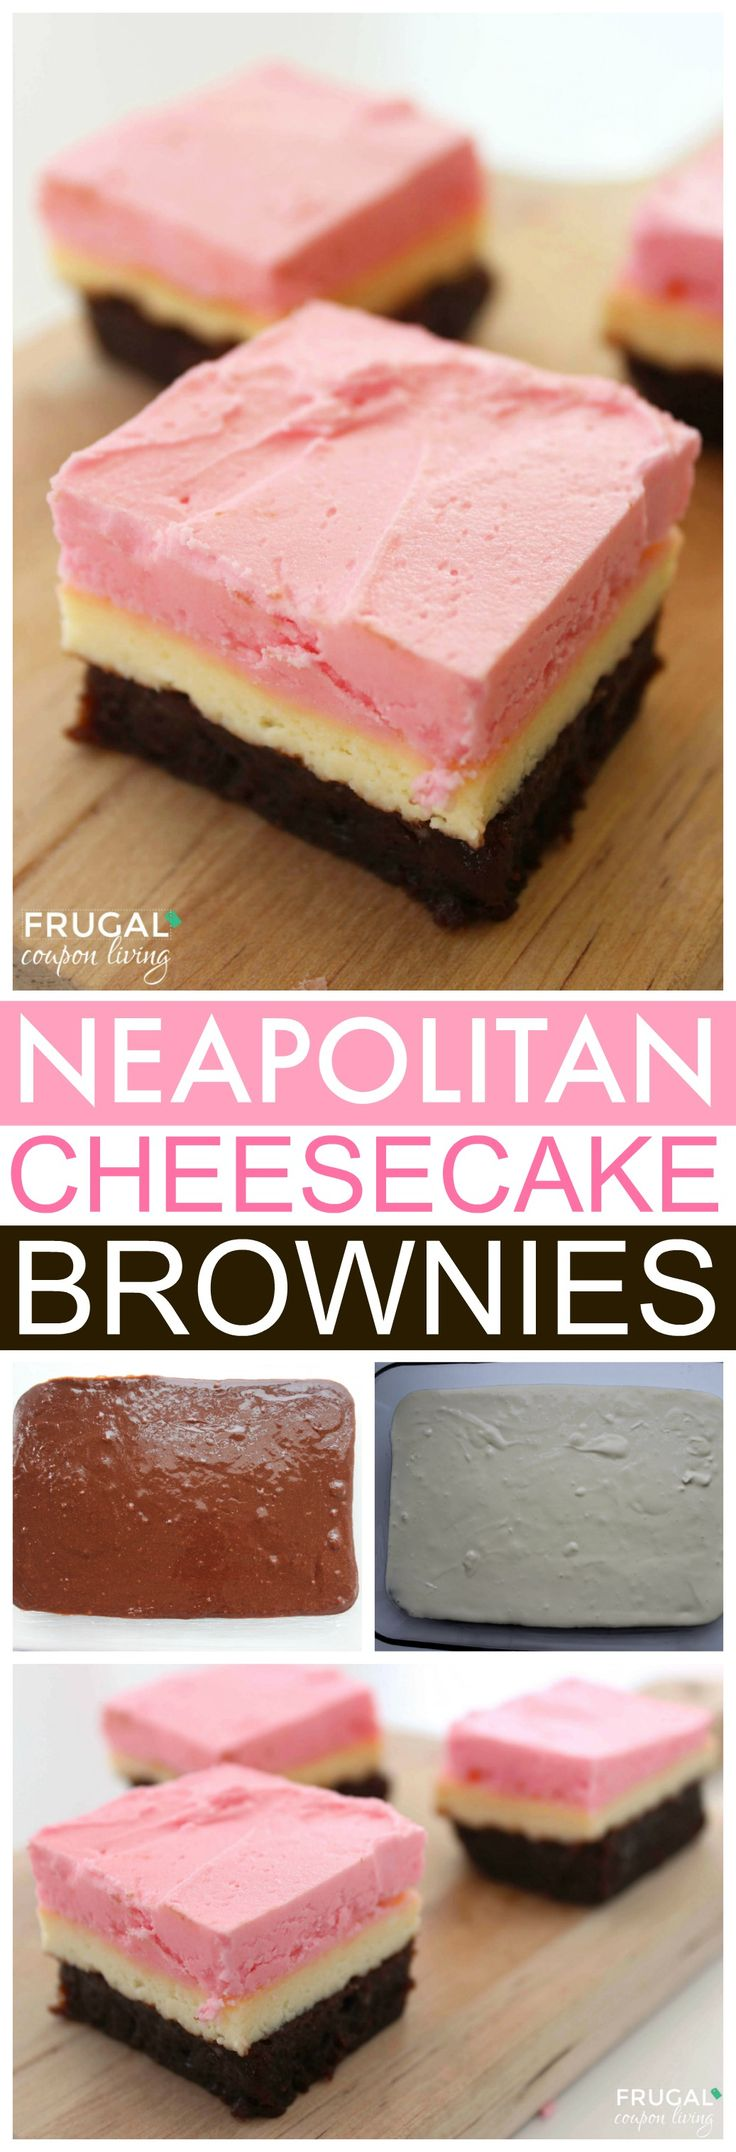 Easy to make Neapolitan Dessert Bars - Cheesecake & brownie layered dessert recipe on Frugal Coupon Living.